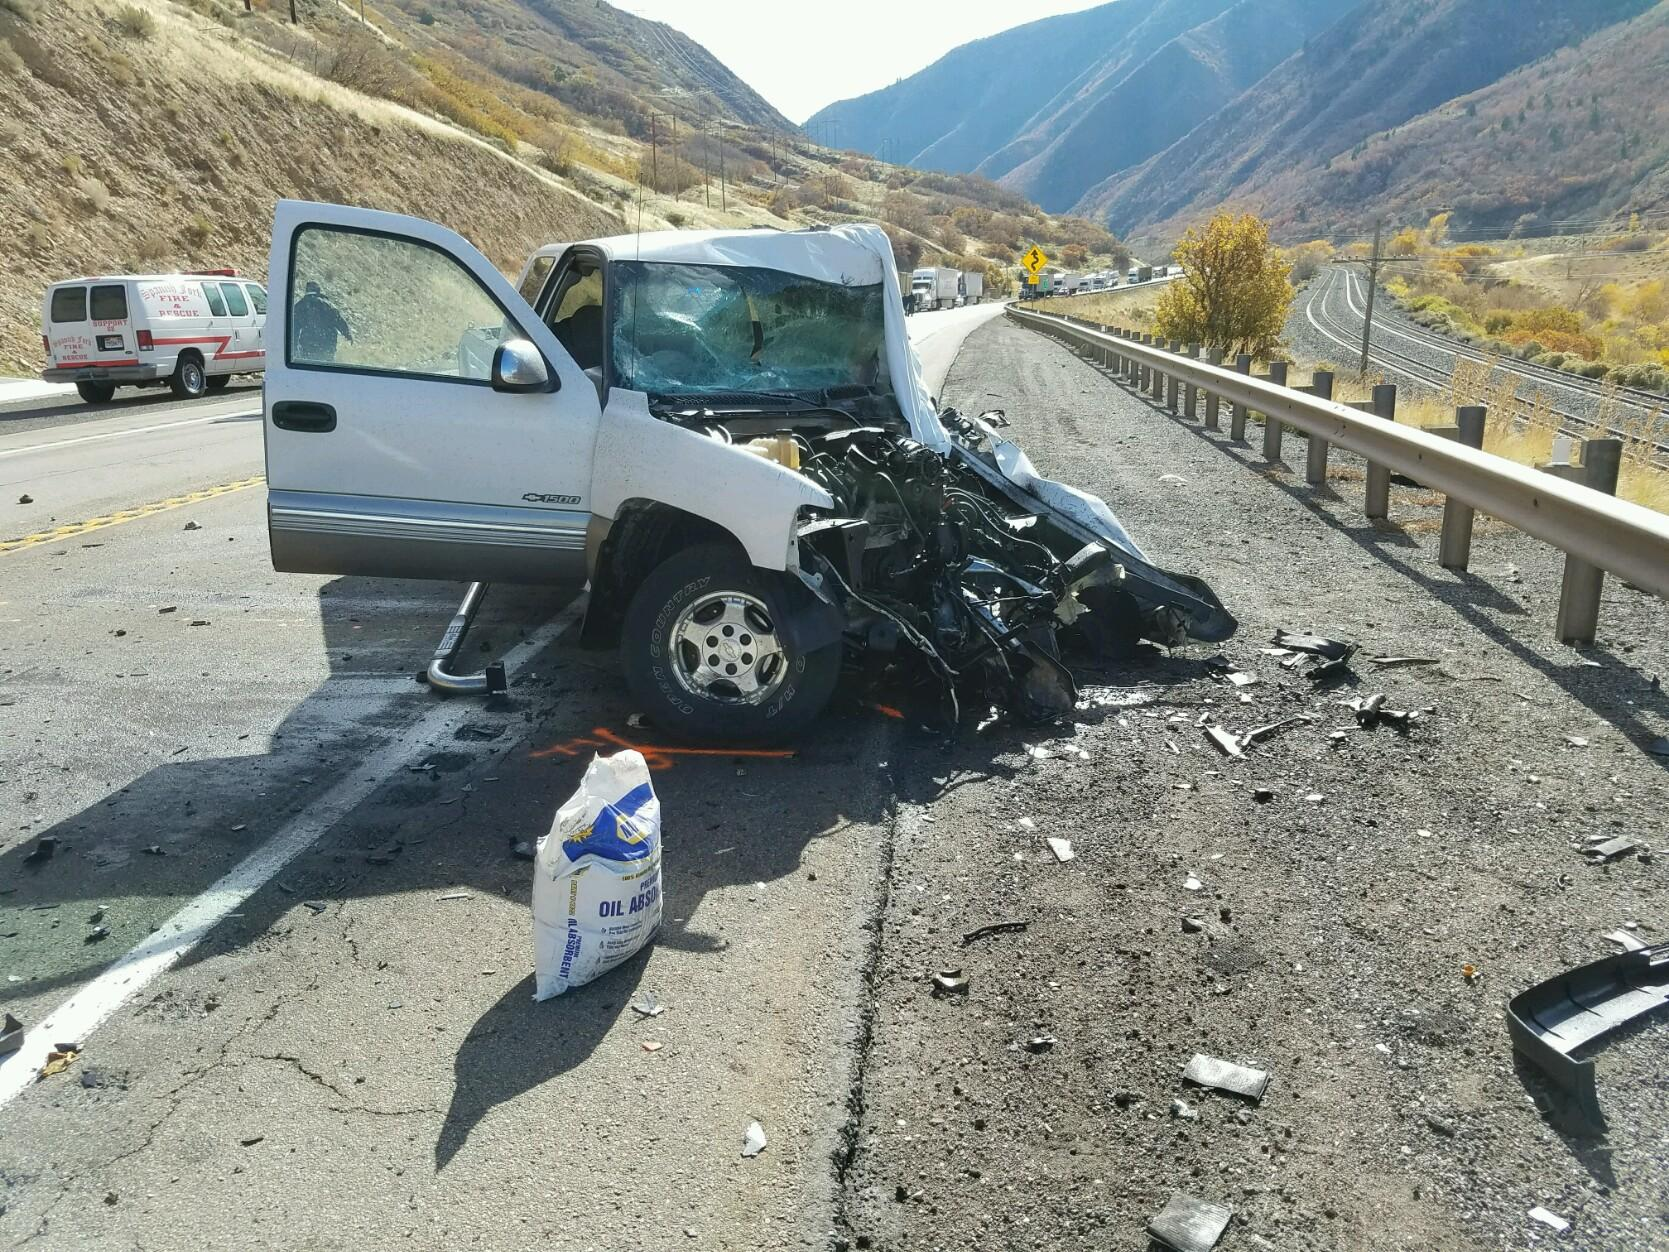 One Person Is Dead After A Head On Collision Between Pickup Truck And Semi Tuesday Morning At The Mouth Of Spanish Fork Canyon Photo Courtesy Uhp